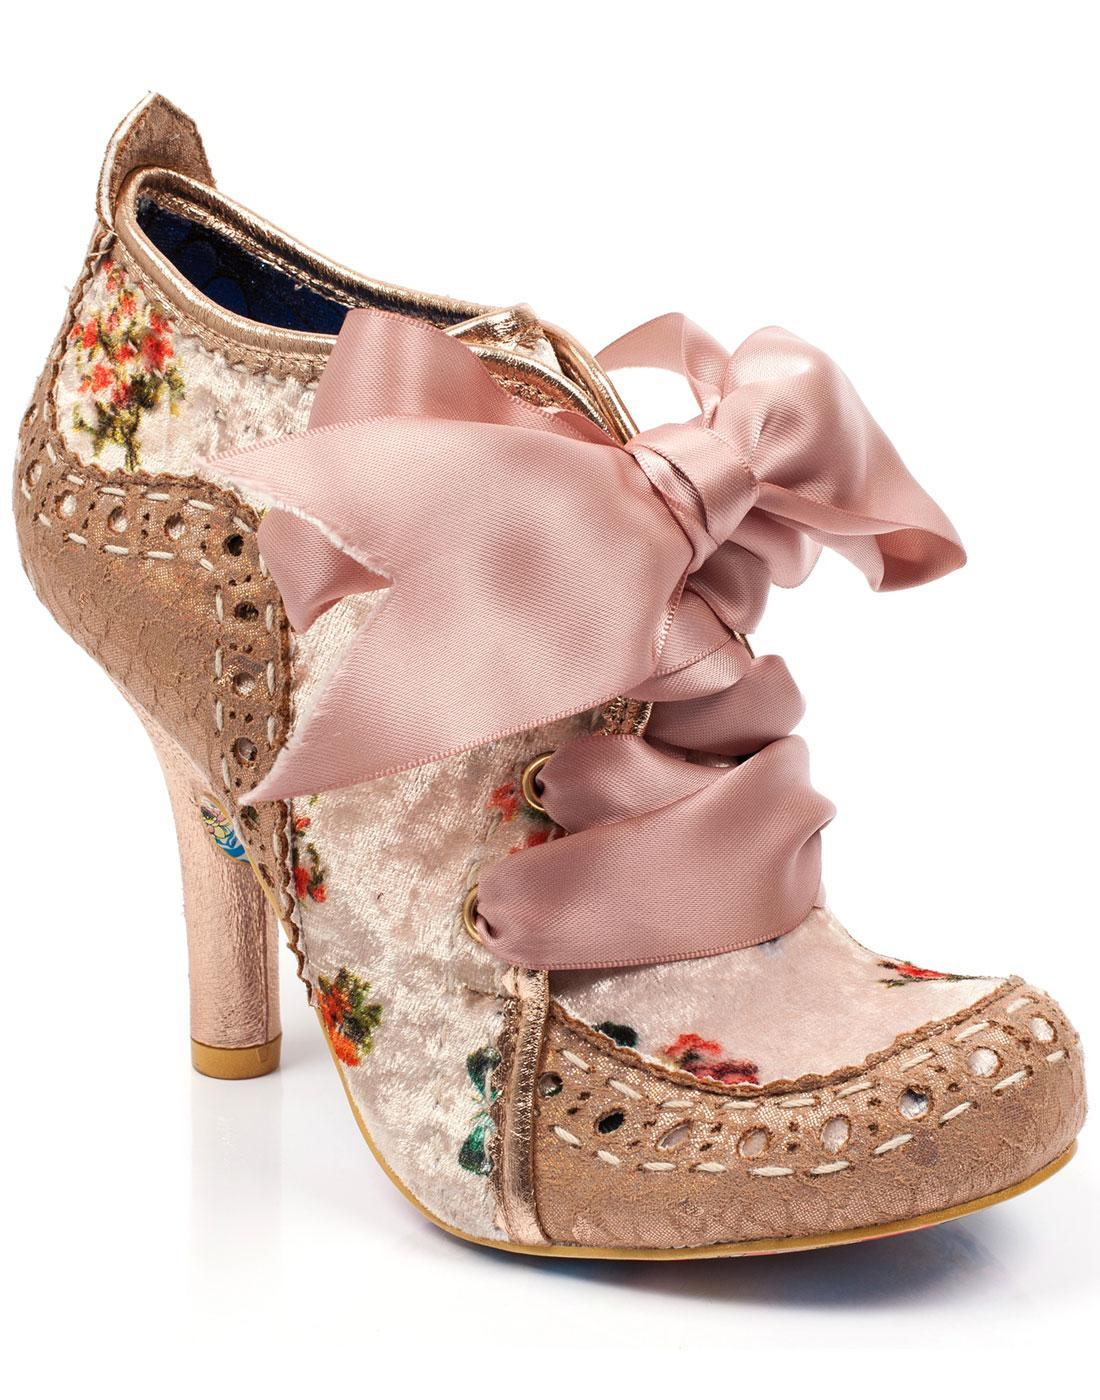 Abigail's 3rd Party IRREGULAR CHOICE Boots in Gold